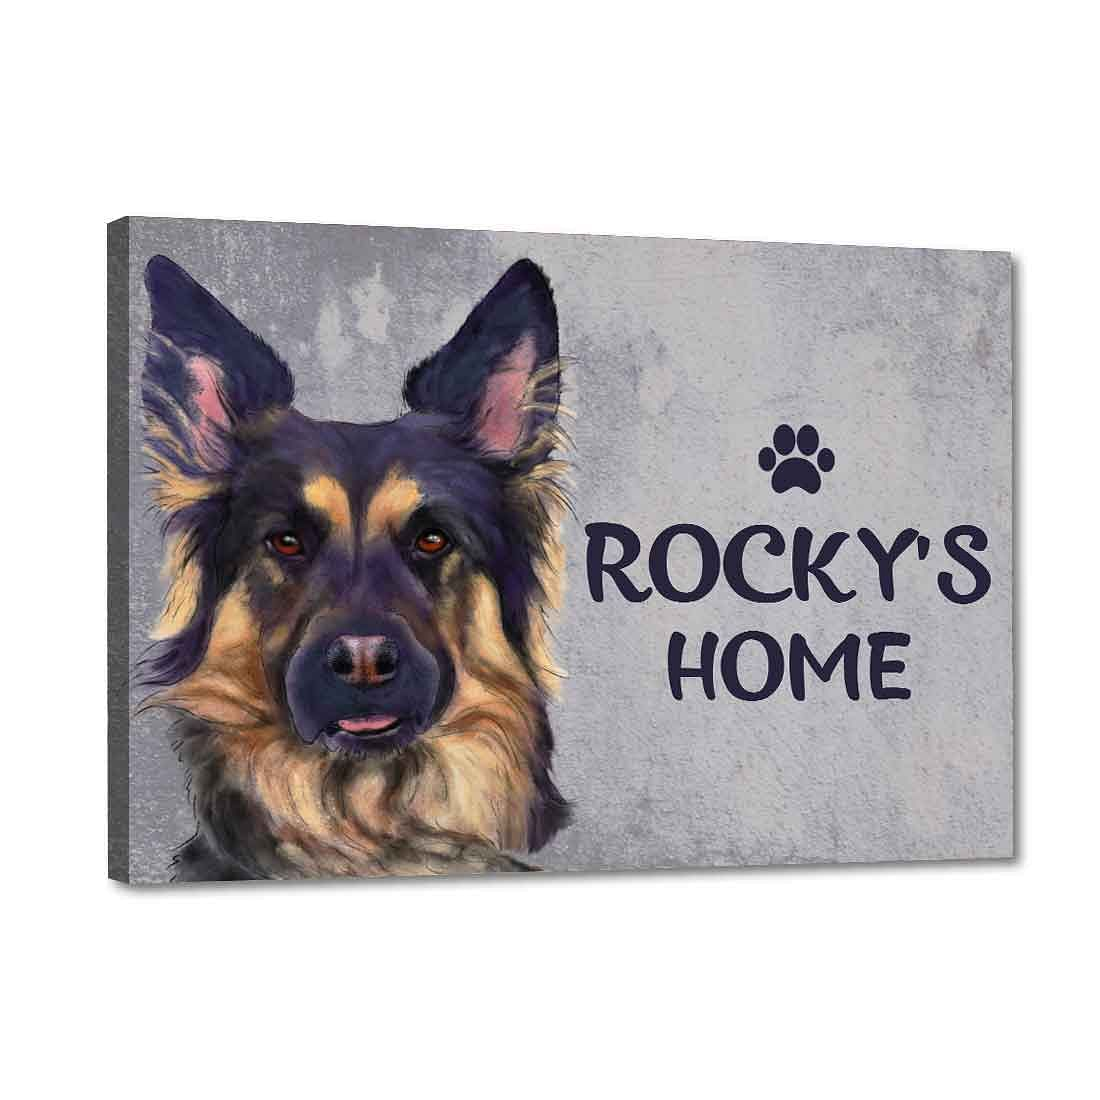 Customized Dog Name Plate